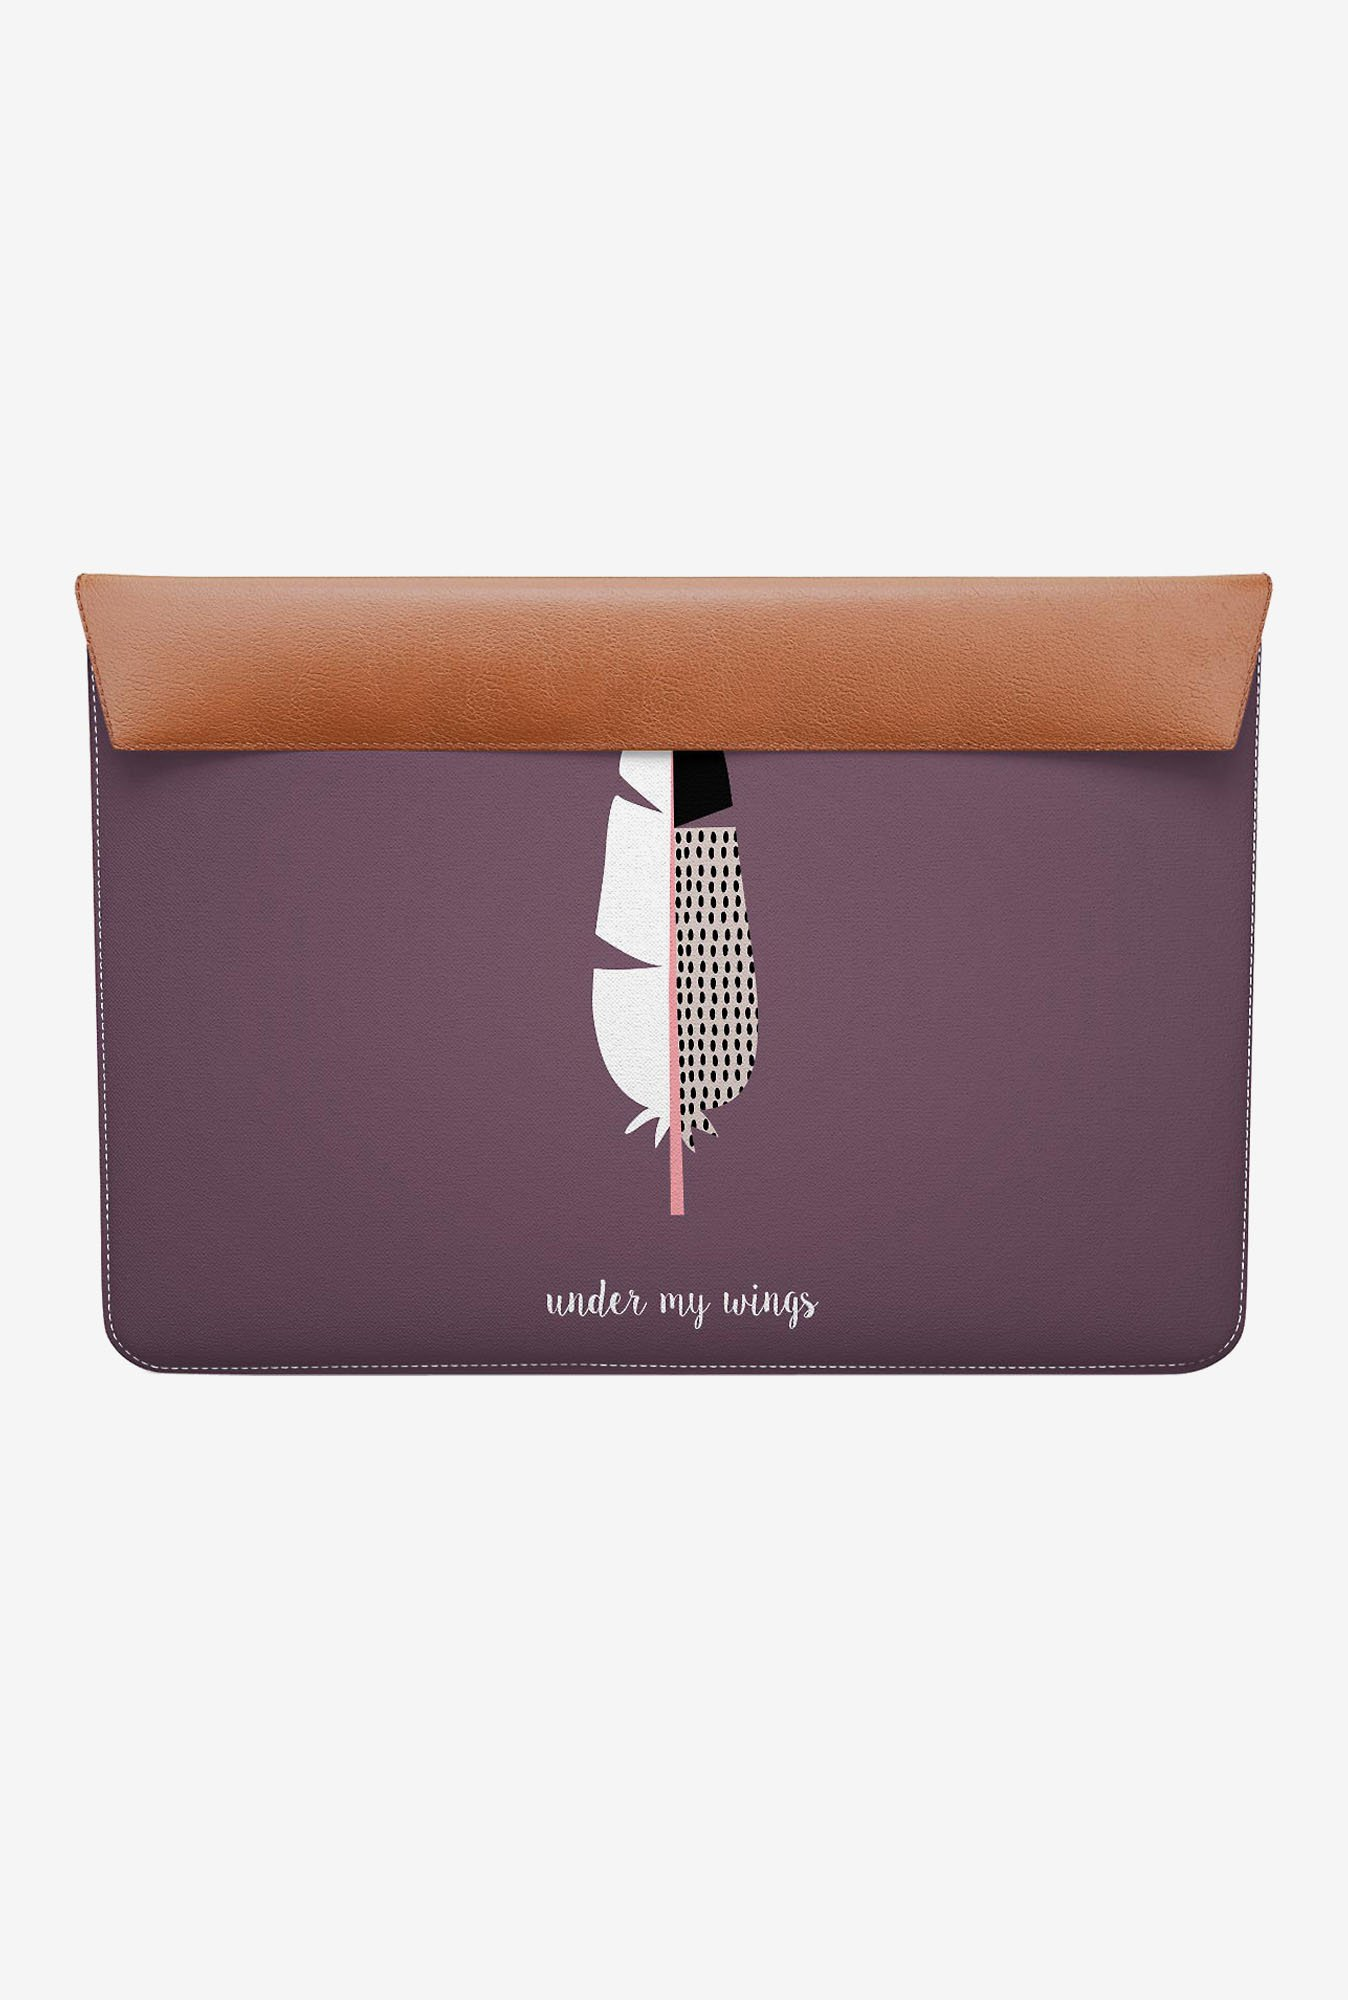 DailyObjects Under My Wings MacBook Pro 15 Envelope Sleeve